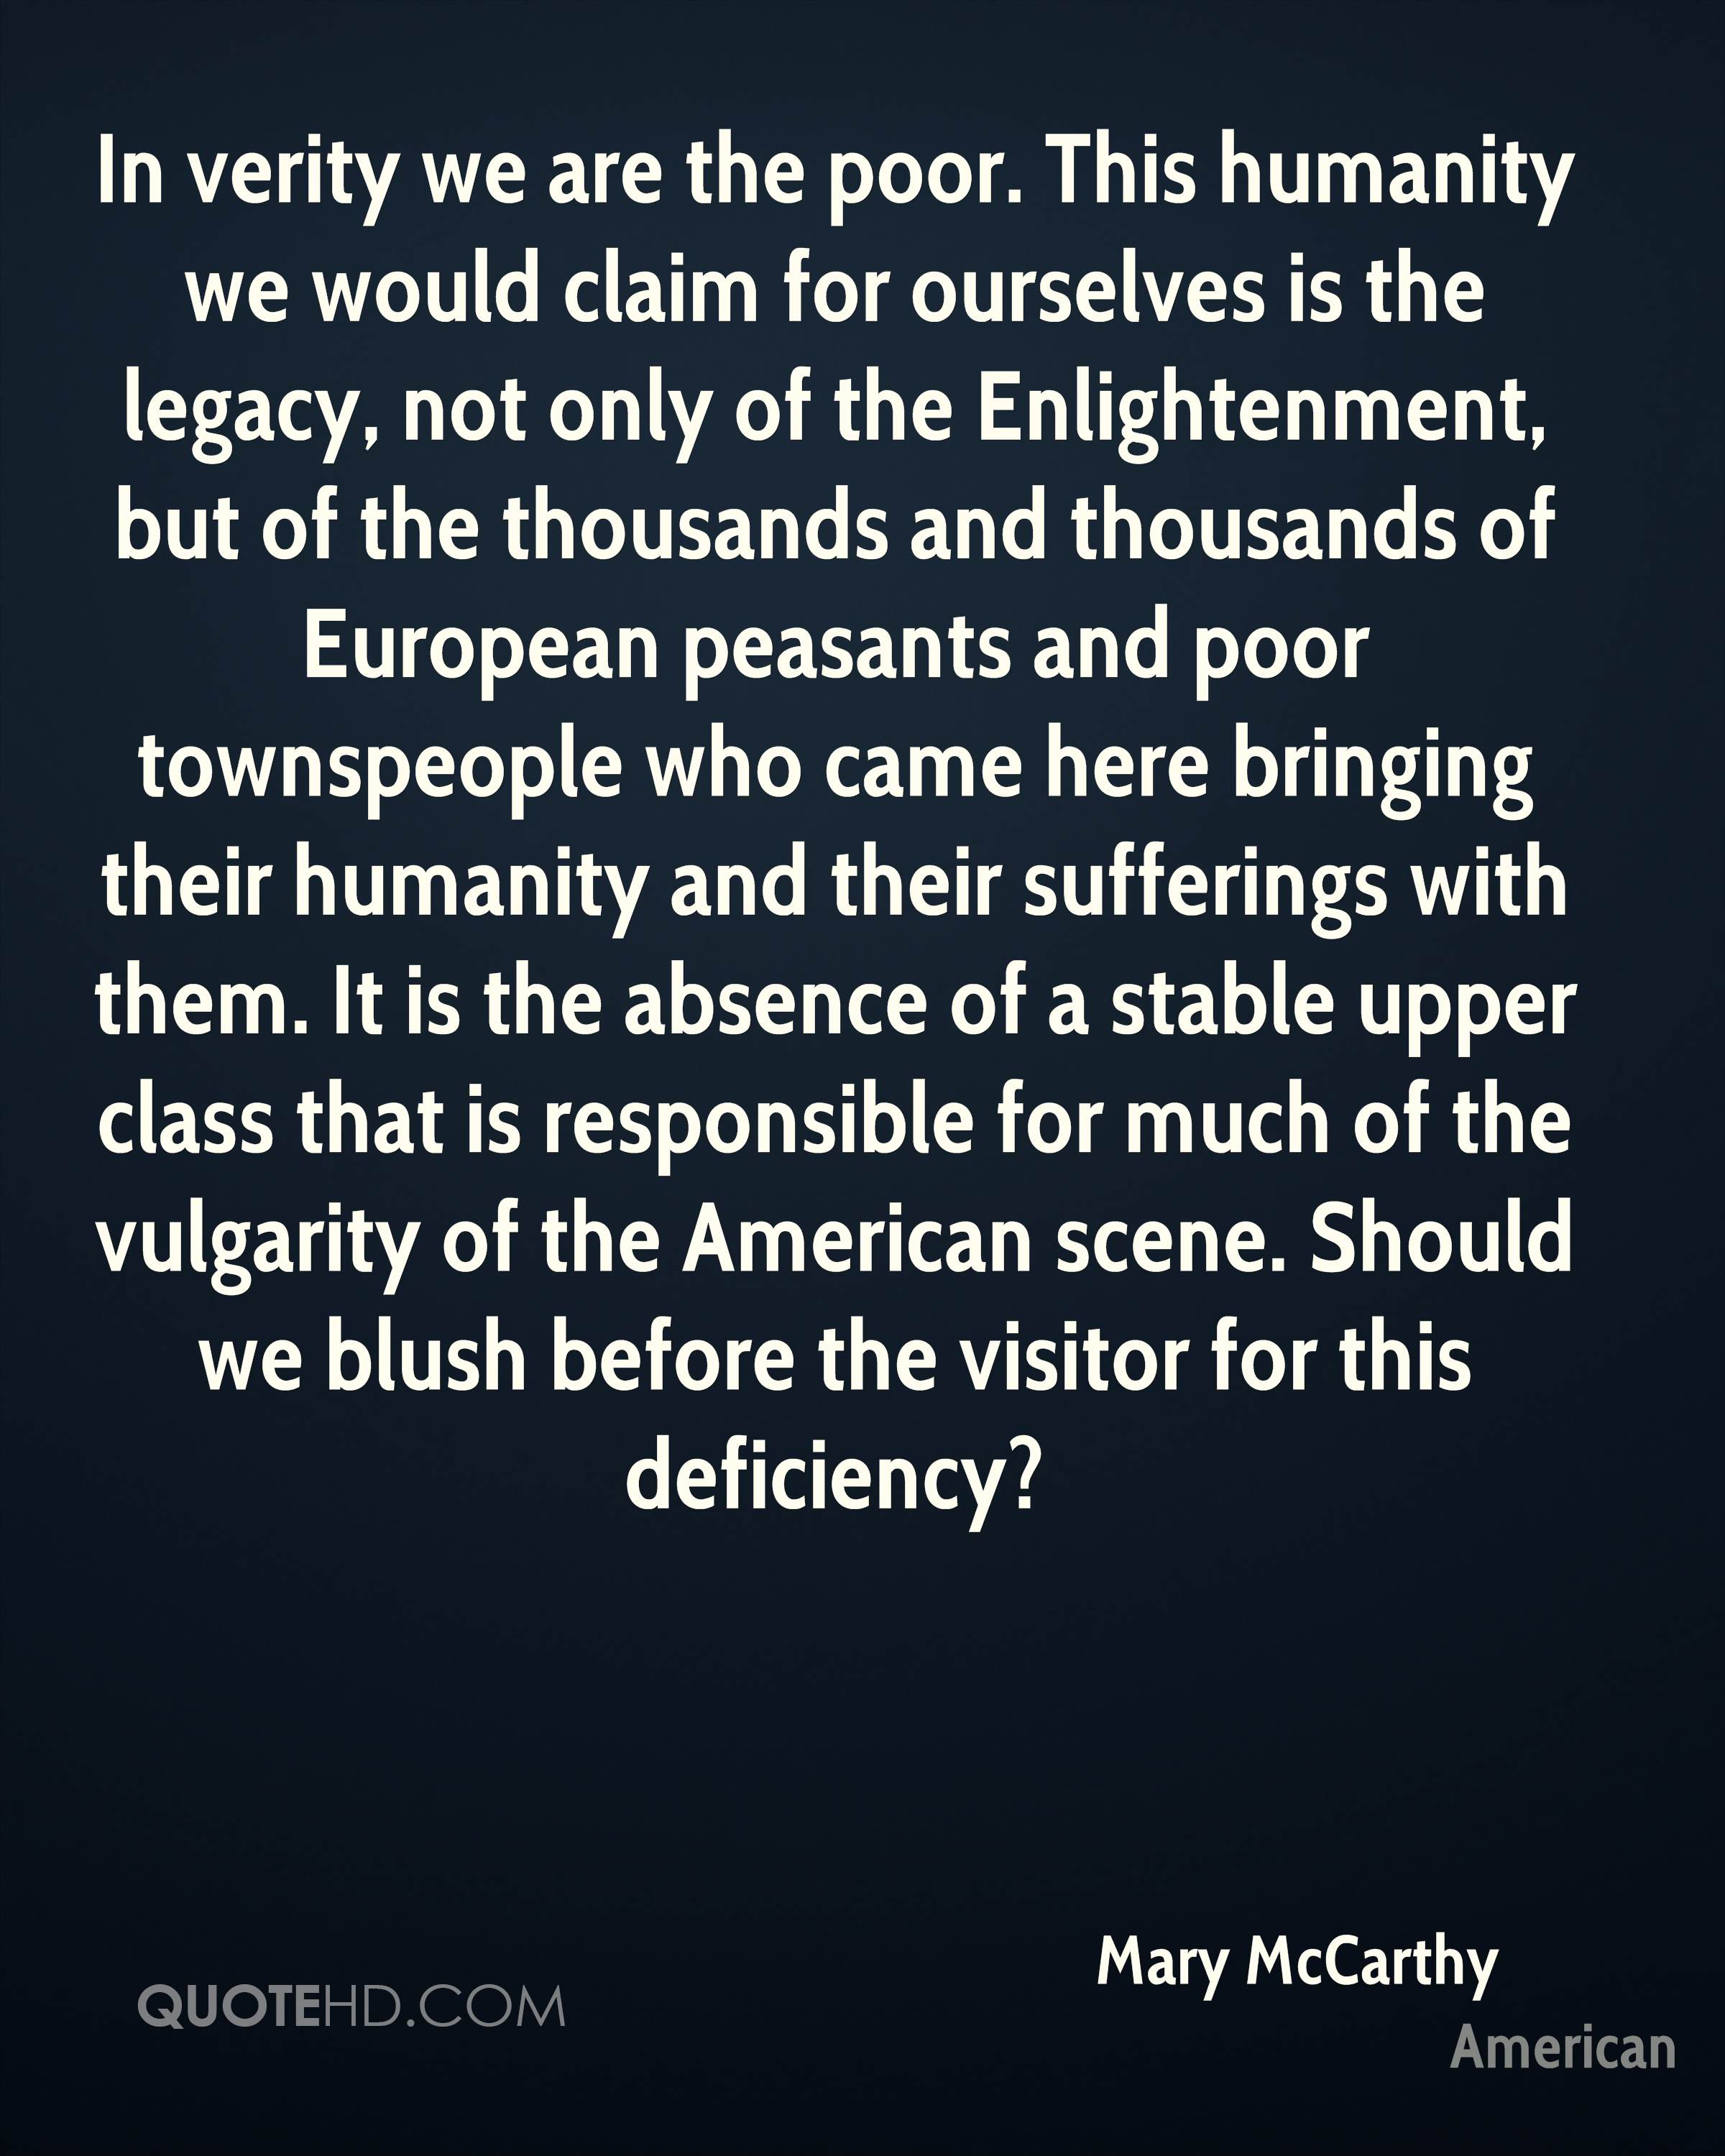 In verity we are the poor. This humanity we would claim for ourselves is the legacy, not only of the Enlightenment, but of the thousands and thousands of European peasants and poor townspeople who came here bringing their humanity and their sufferings with them. It is the absence of a stable upper class that is responsible for much of the vulgarity of the American scene. Should we blush before the visitor for this deficiency?